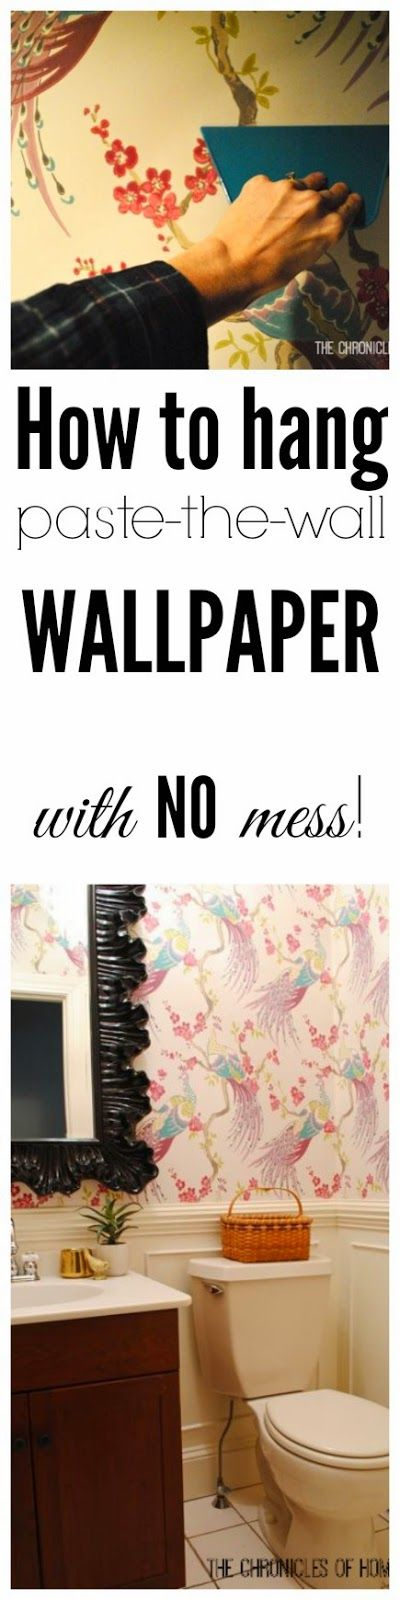 How to hang paste-the-wall wallpaper. So simple and no mess!